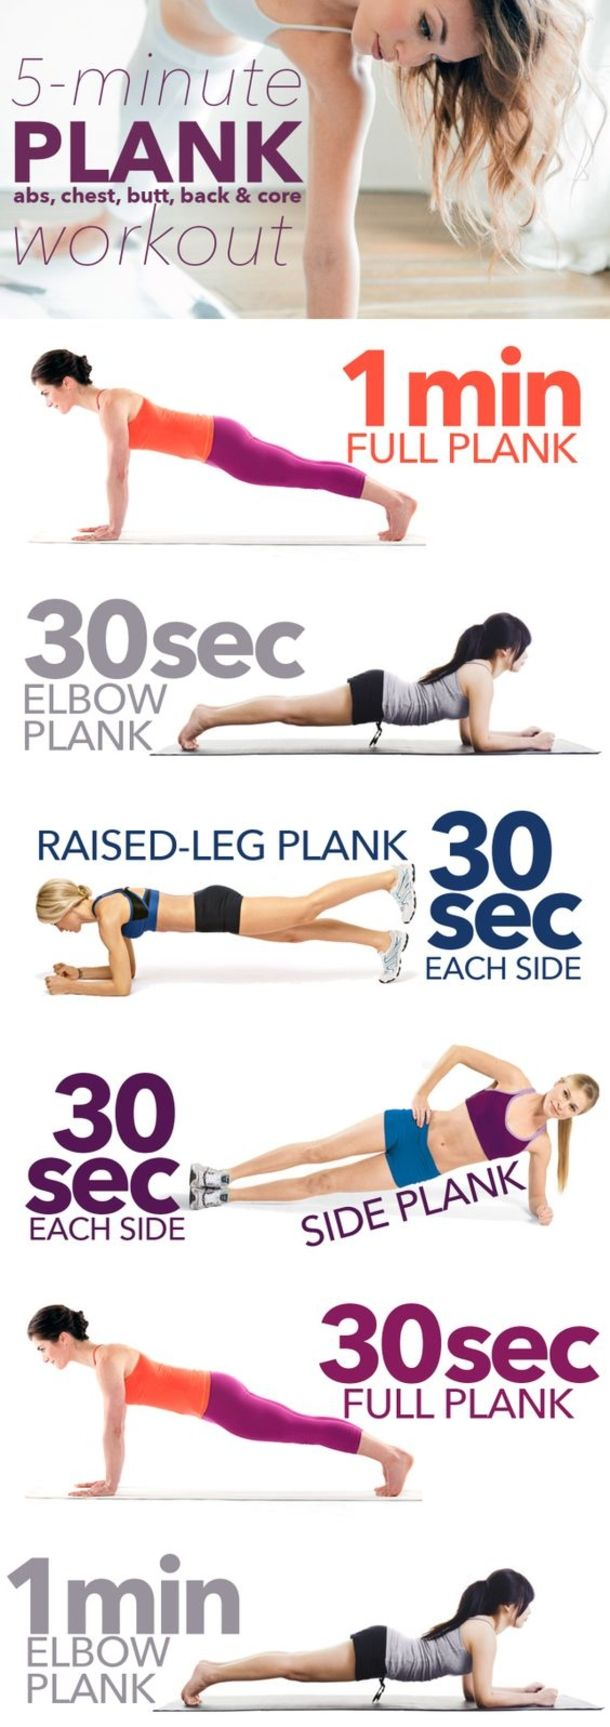 The Best Fat Burning And Exercise Guides To Help You Lose Weight Fast! body workout weight loss exercise health healthy living fat loss good to know viral viral right now viral posts